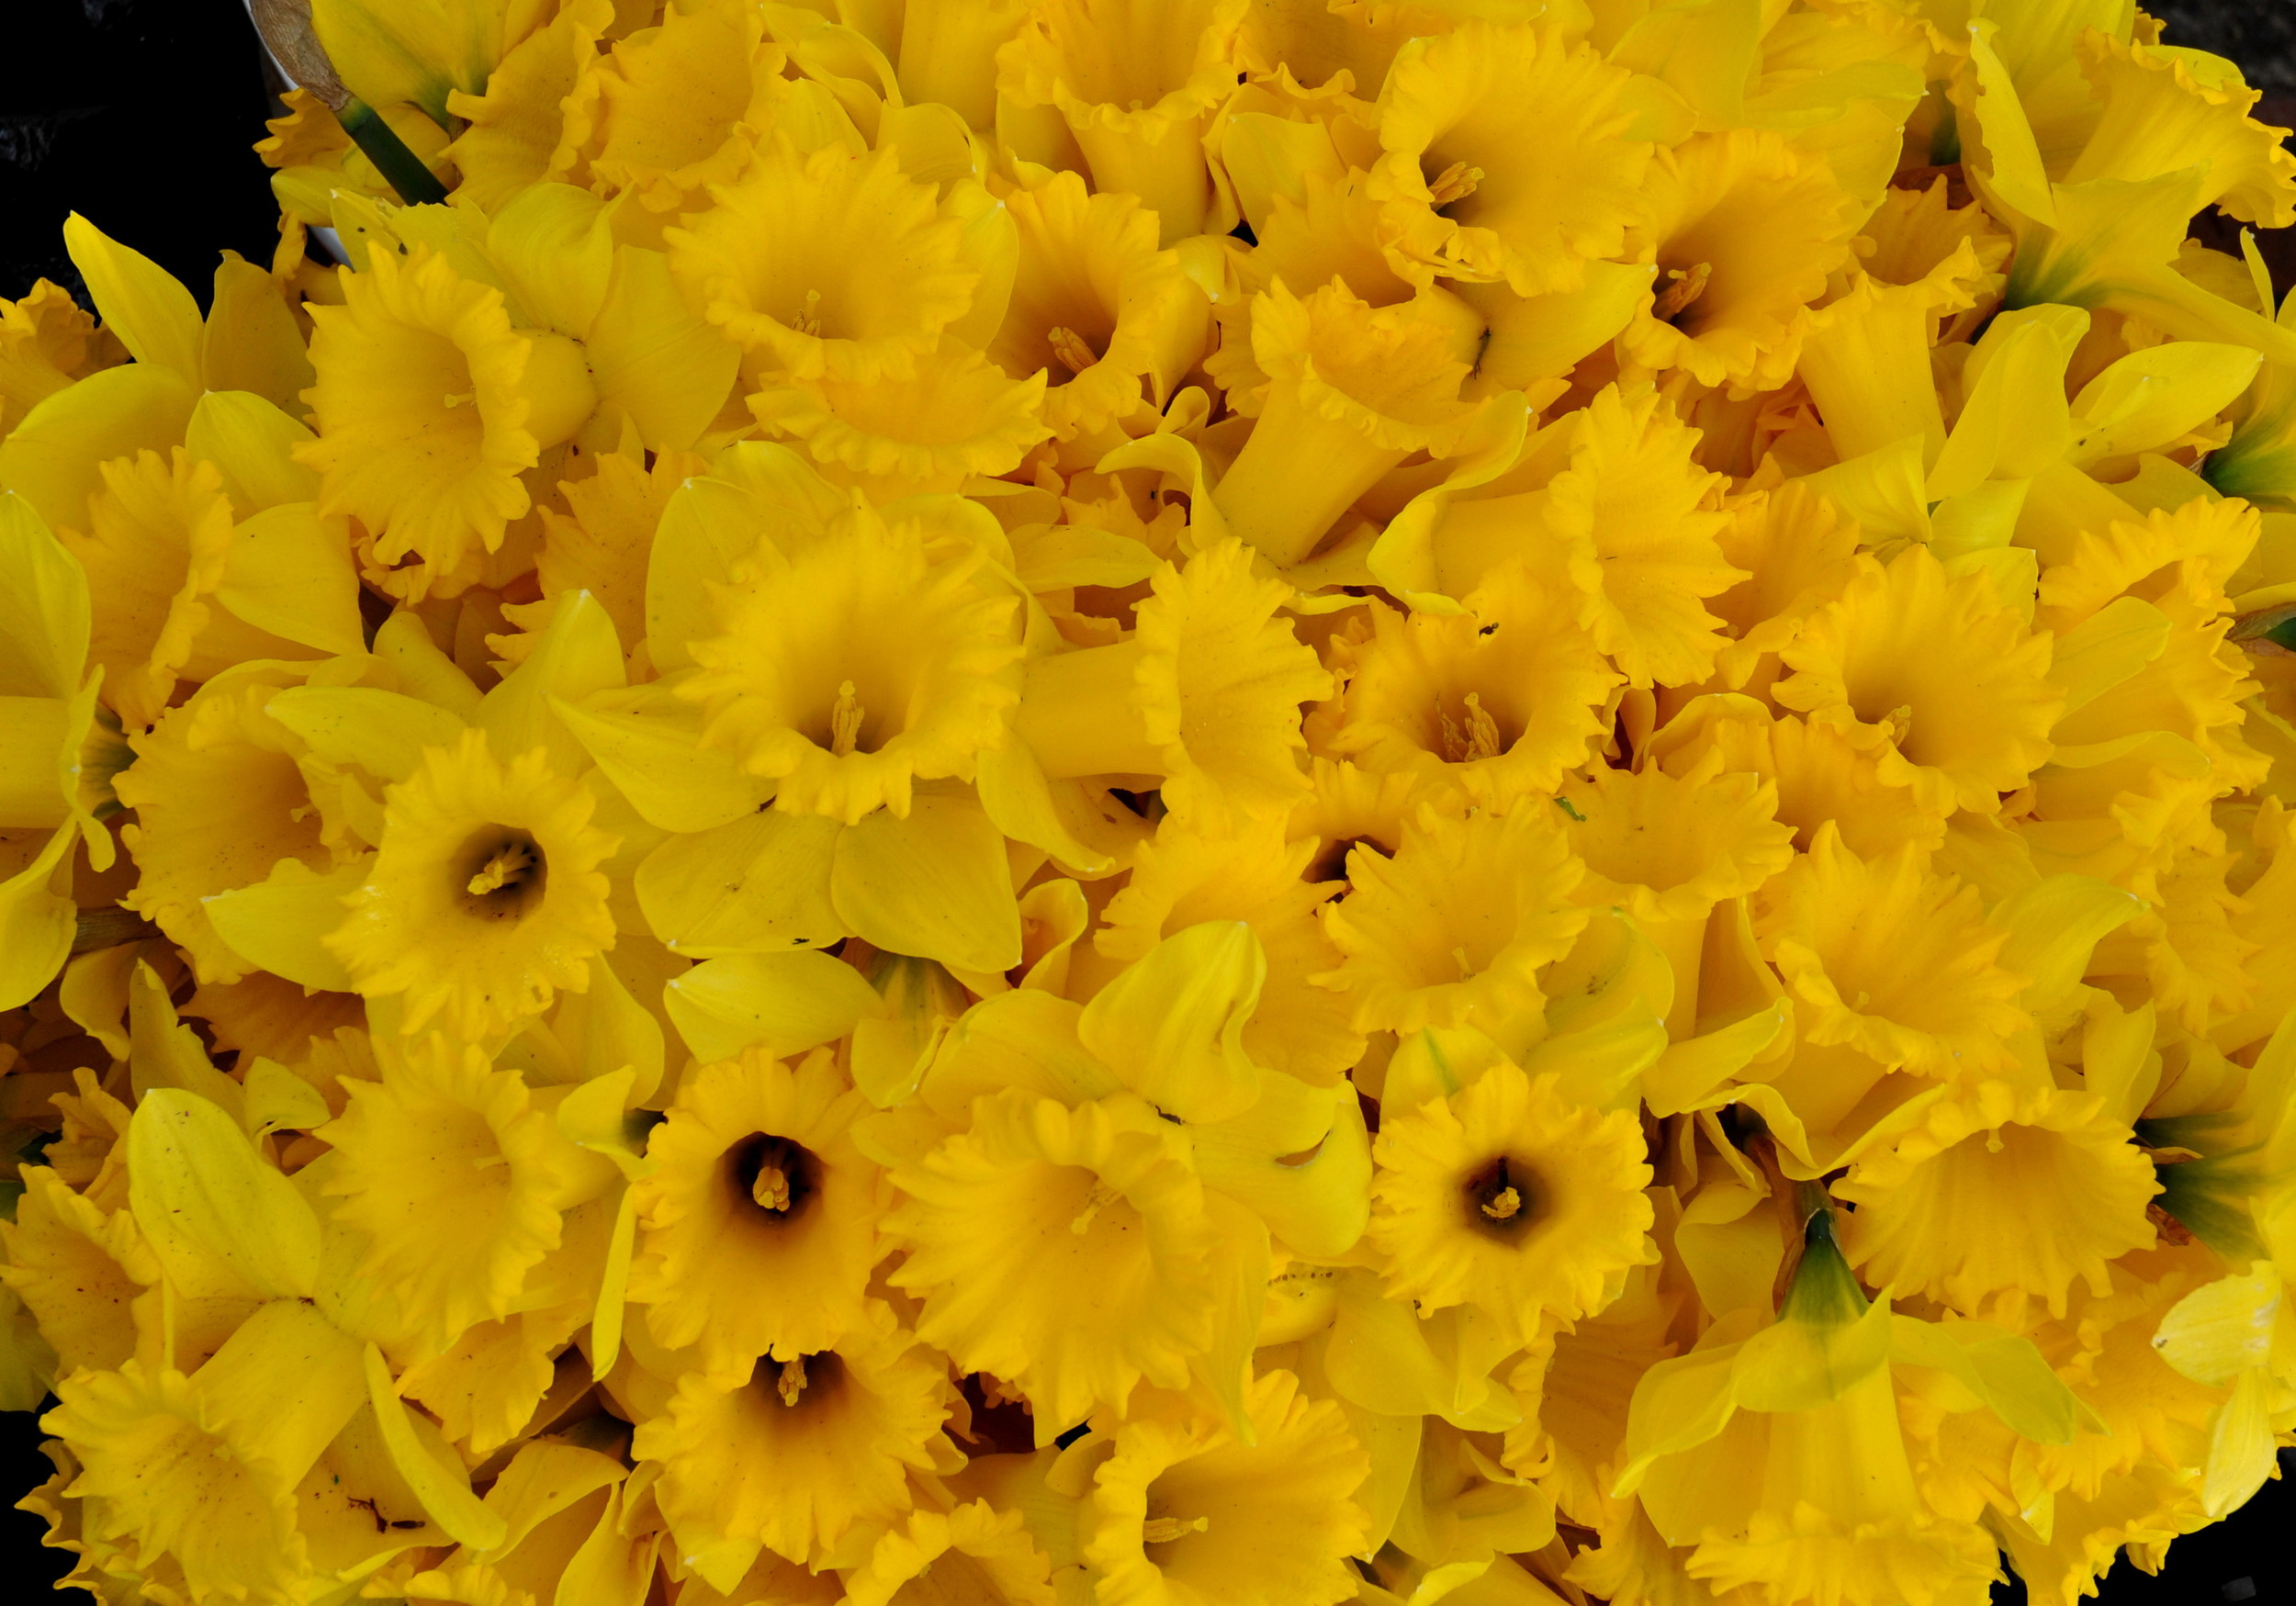 Daffodils from Mee Garden at Ballard Farmers Market. Copyright Zachary D. Lyons.